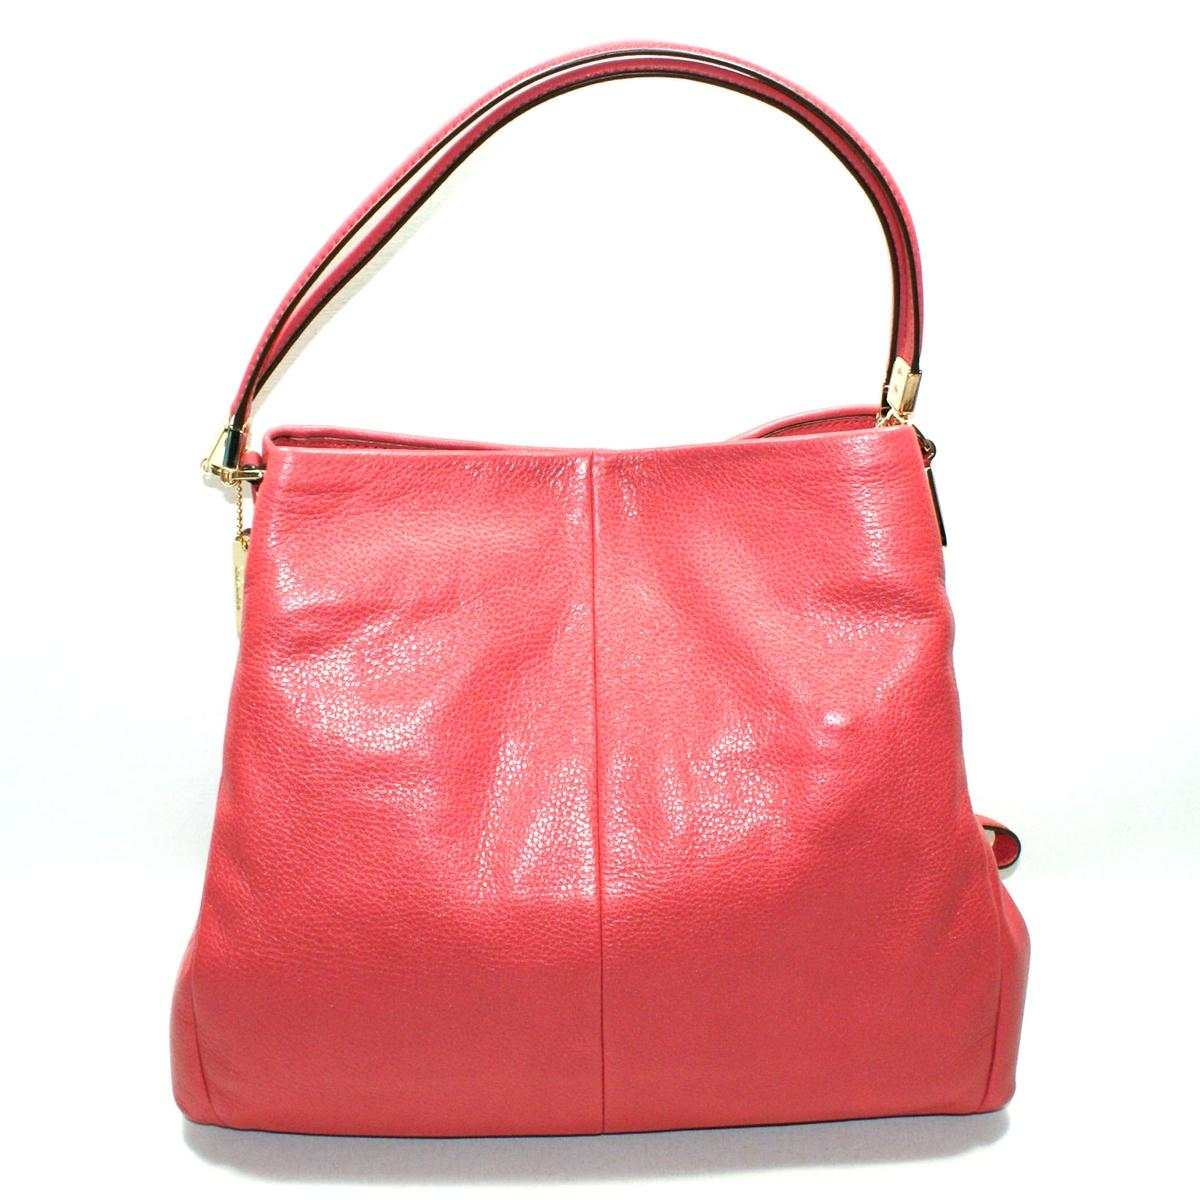 754dcd586df5 ... switzerland home coach madison leather small phoebe shoulder bag  loganberry. click thumbnail to zoom.